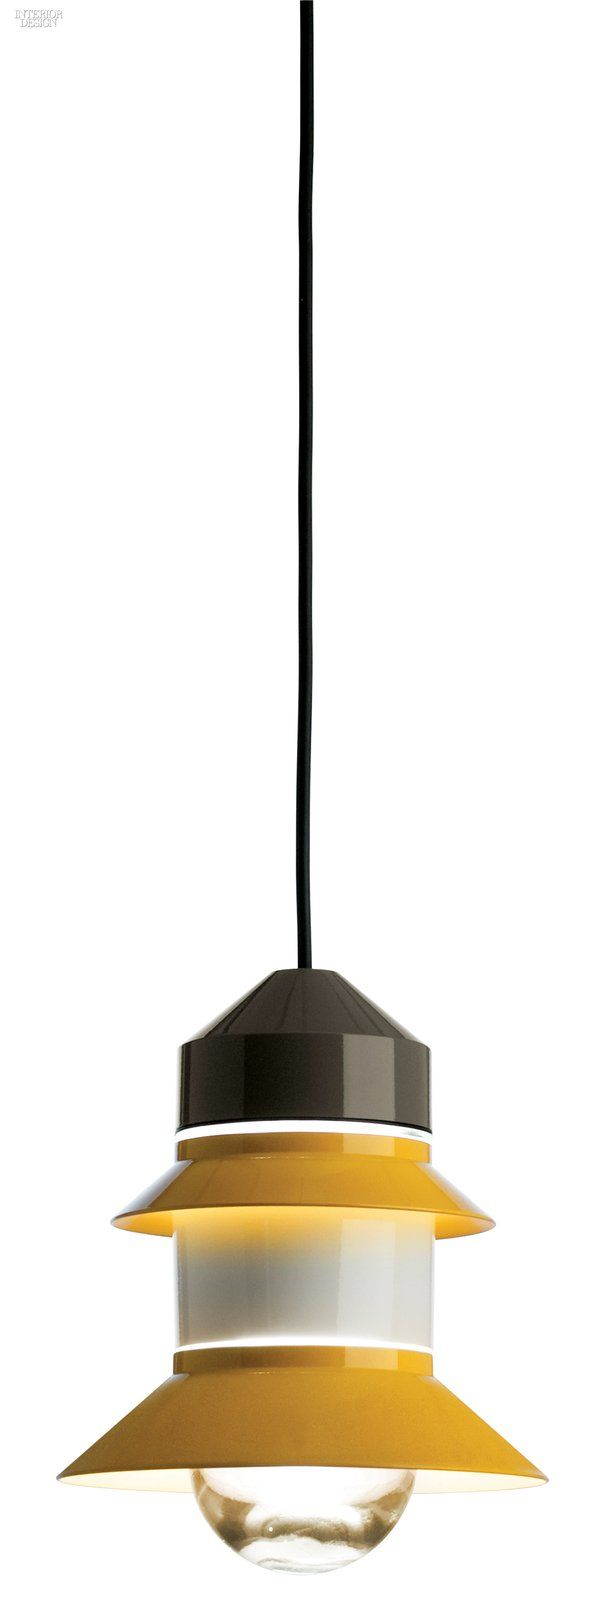 Sputnik Estudio's Santorini pendant in blown glass and polycarbonate with energy-saving fluorescent or LED bulb by Marset.